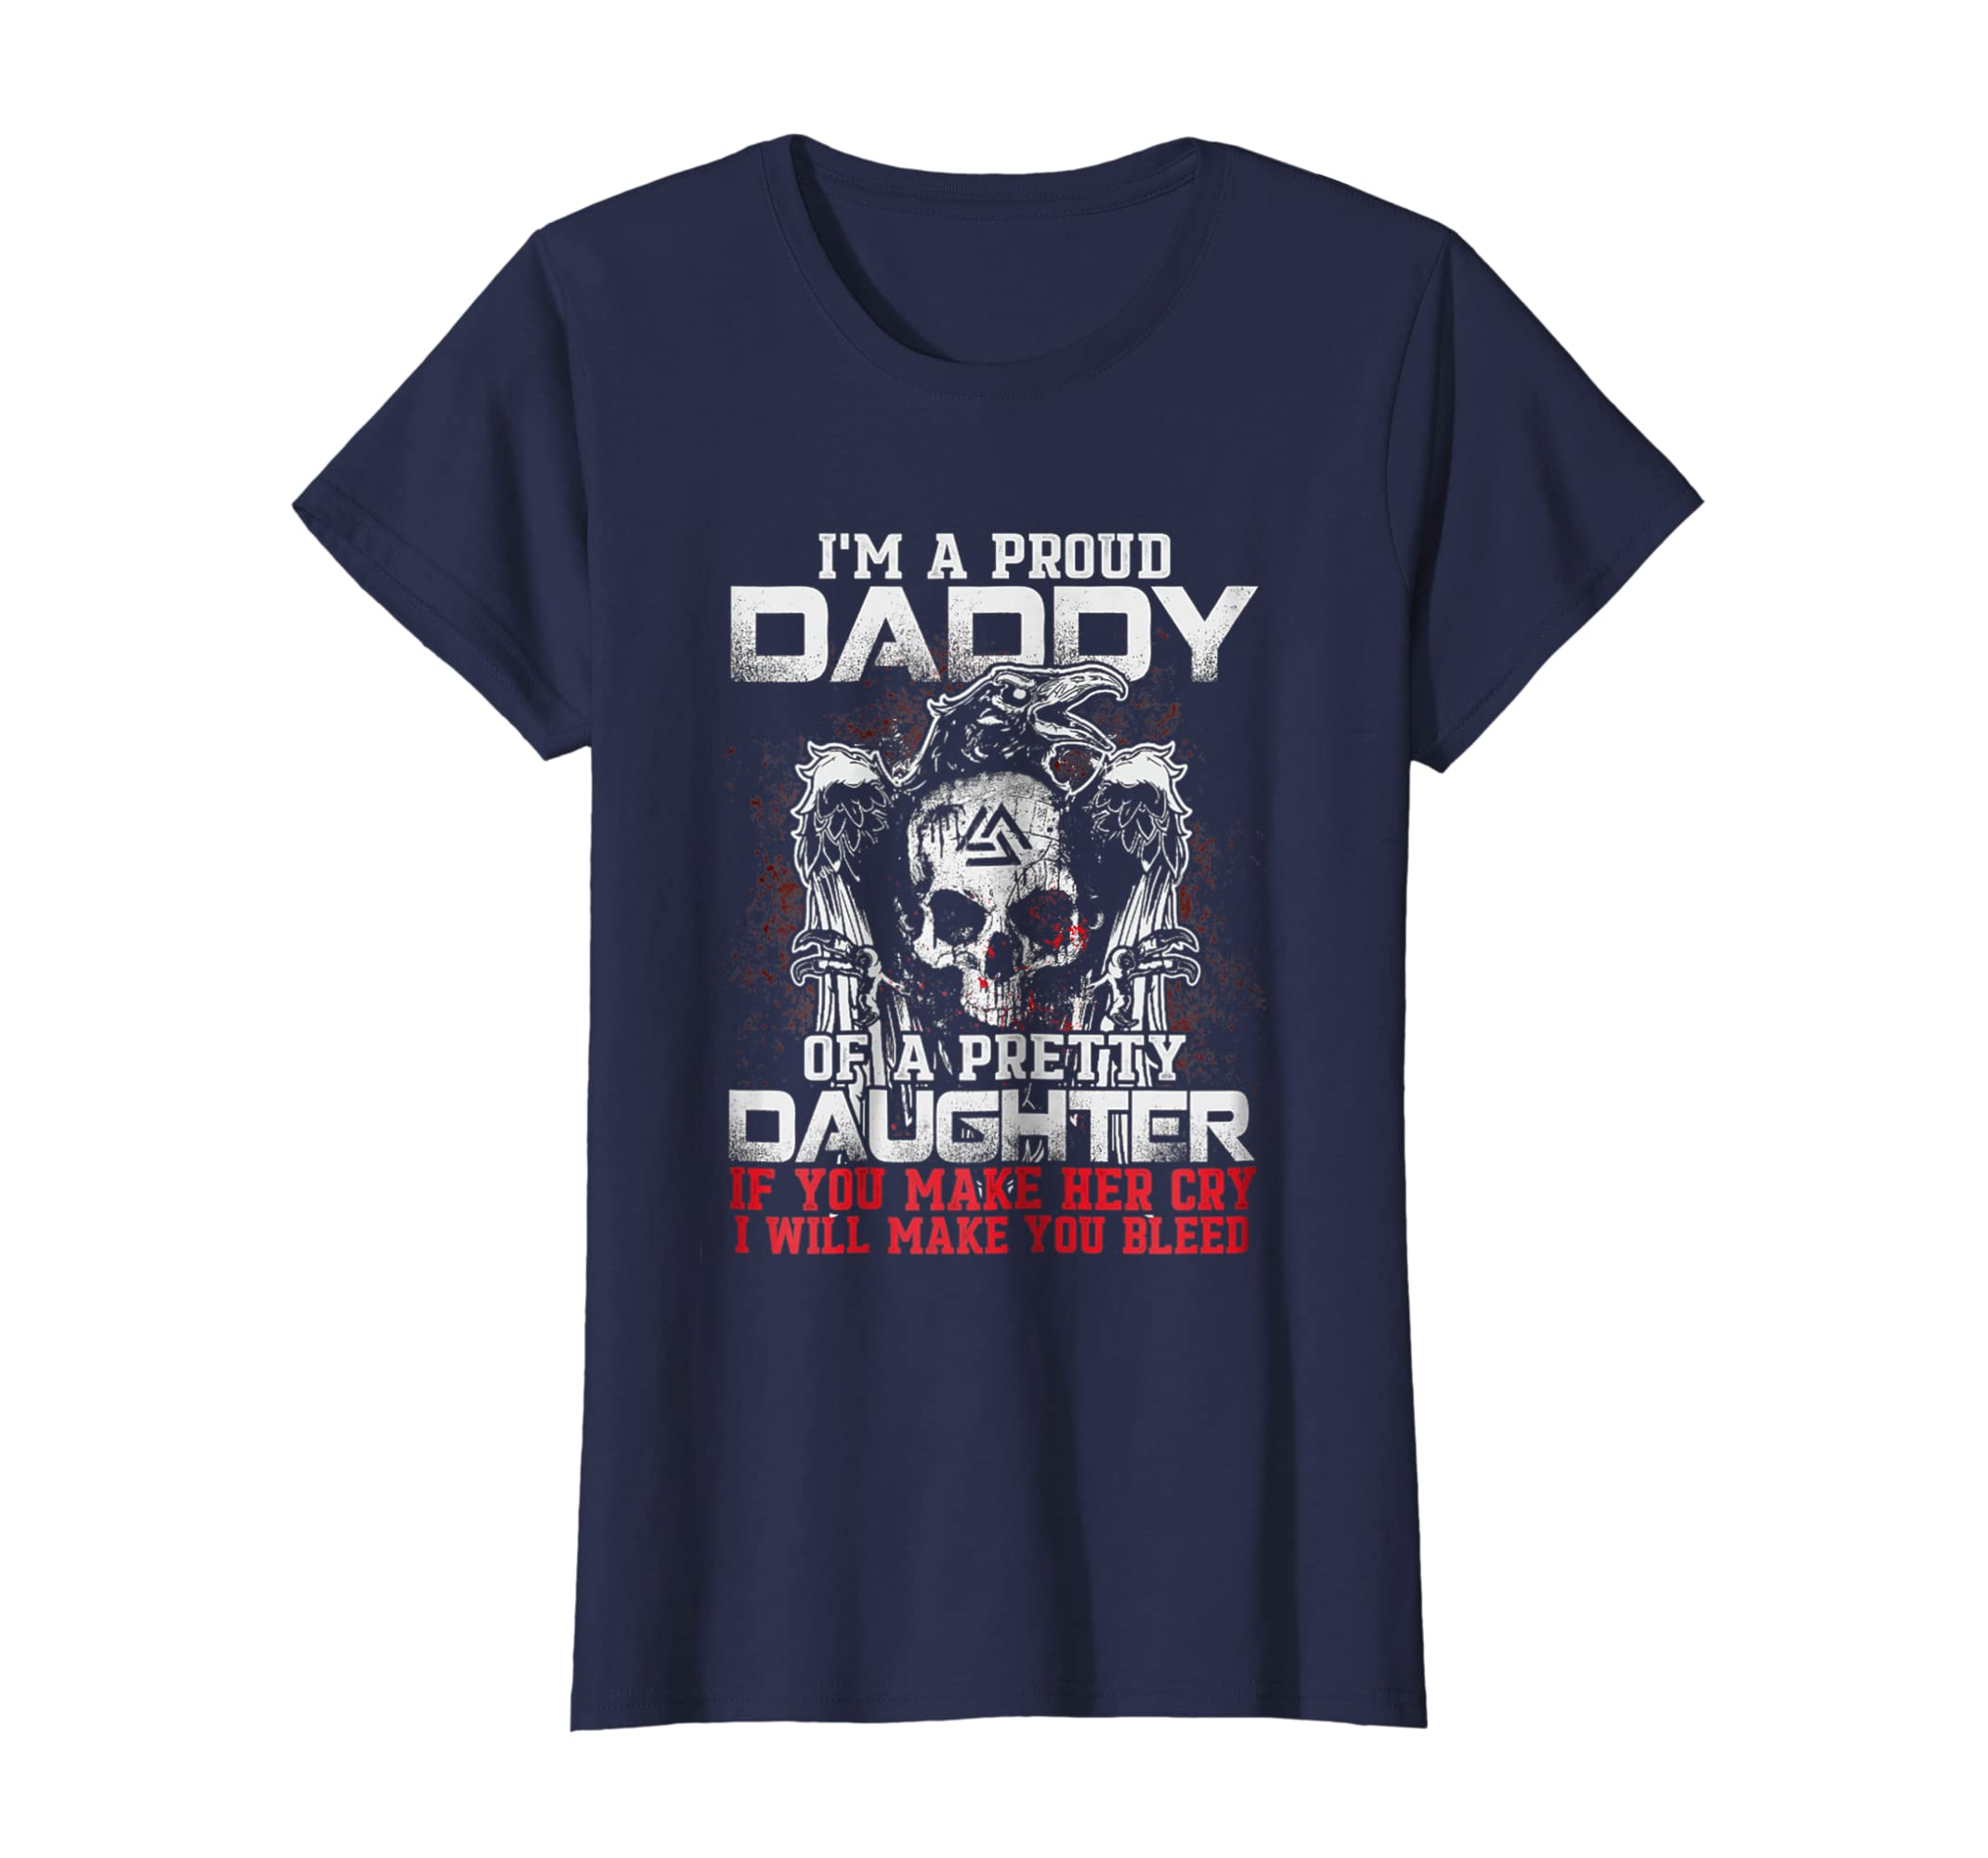 1002a8e3 Amazon.com: I'm proud daddy of a pretty daughter if you make her cry tee:  Clothing